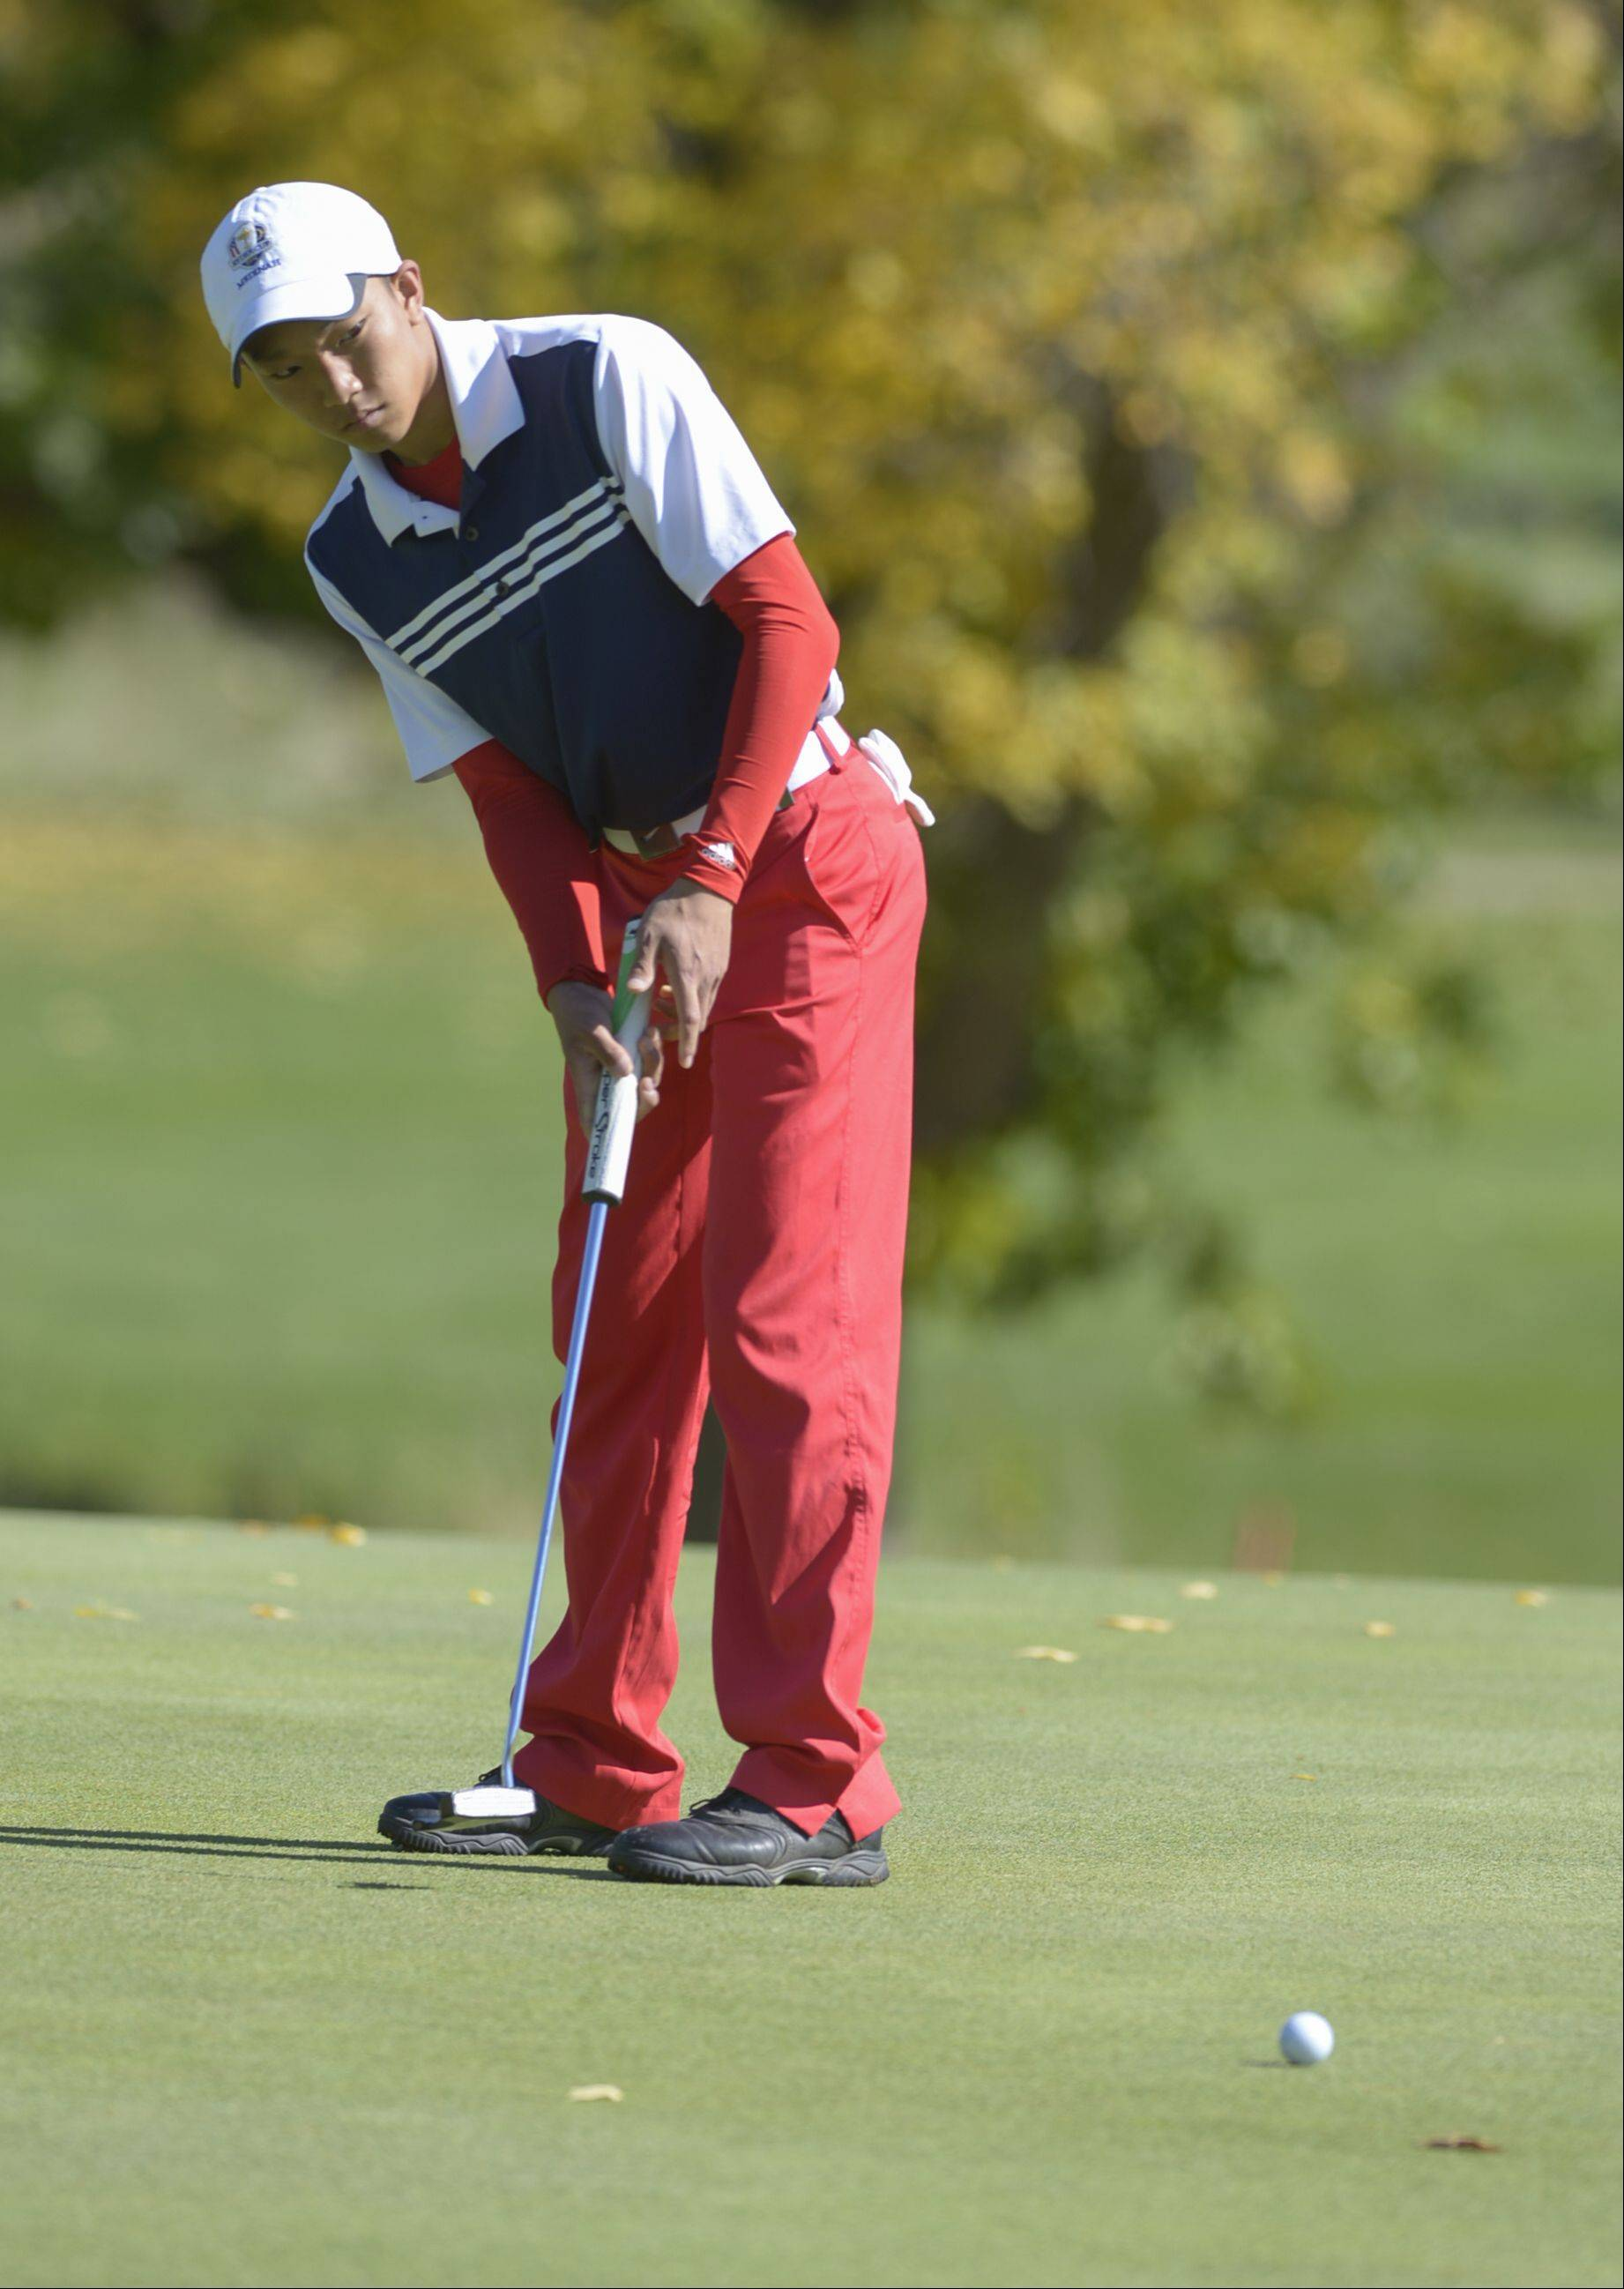 Mark Black/mblack@dailyherald.comJon Chang of Conant putts during the Class 3A Naperville Central sectional boys golf tournament, Monday at Springbrook Golf Course in Naperville.